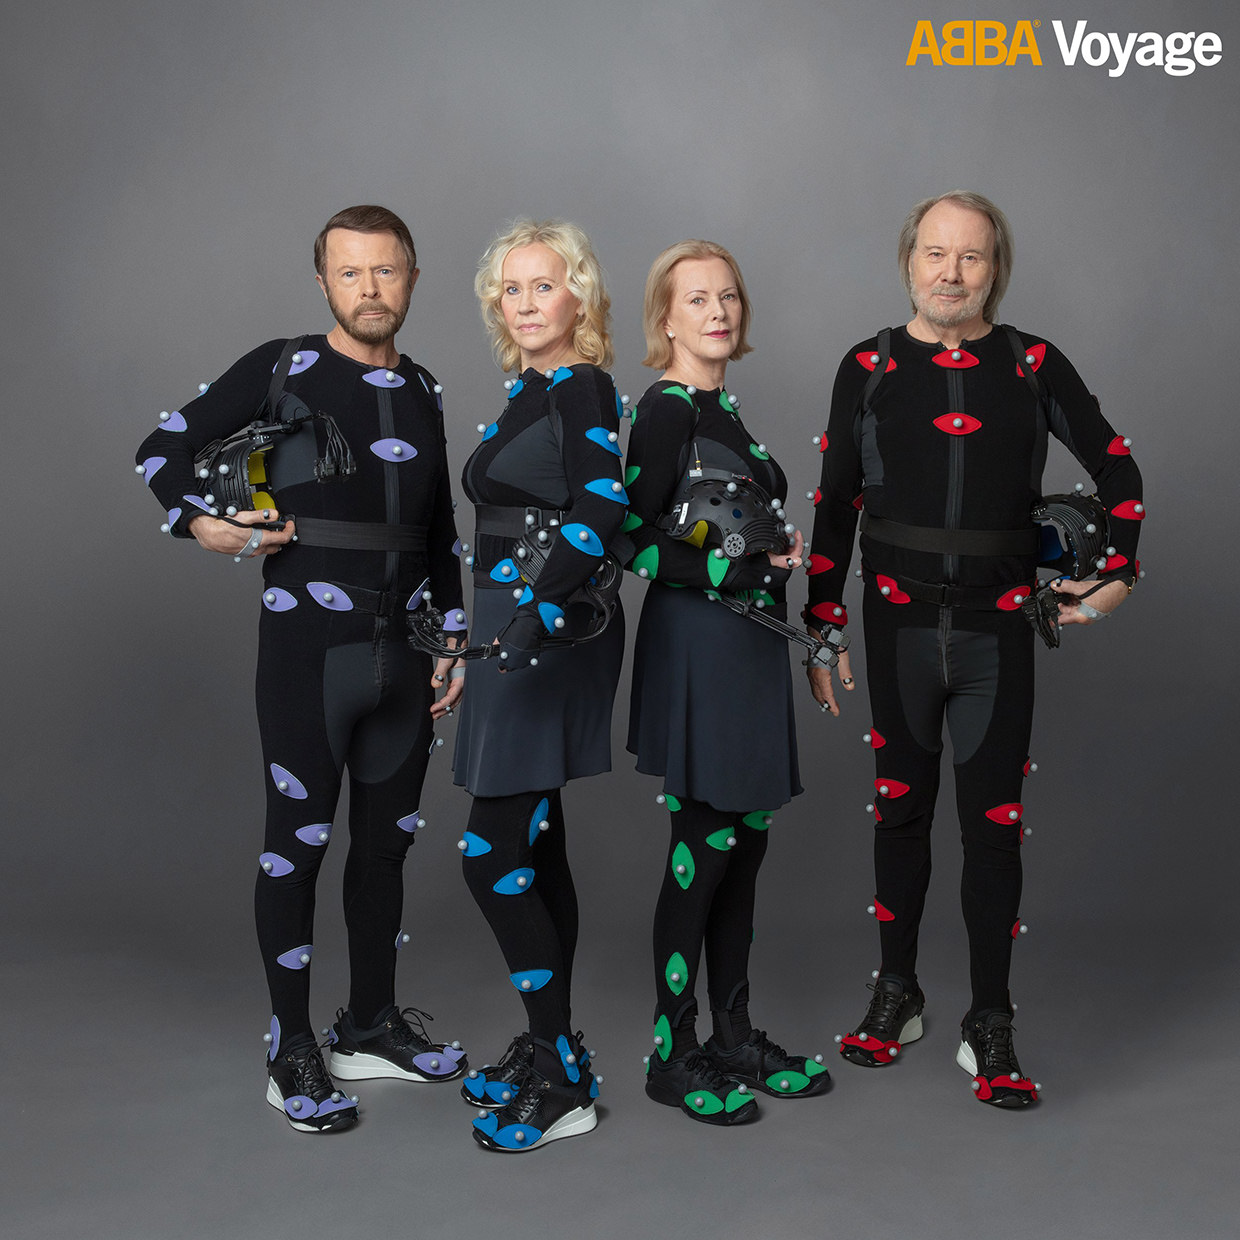 ABBA standing in their VR suits.